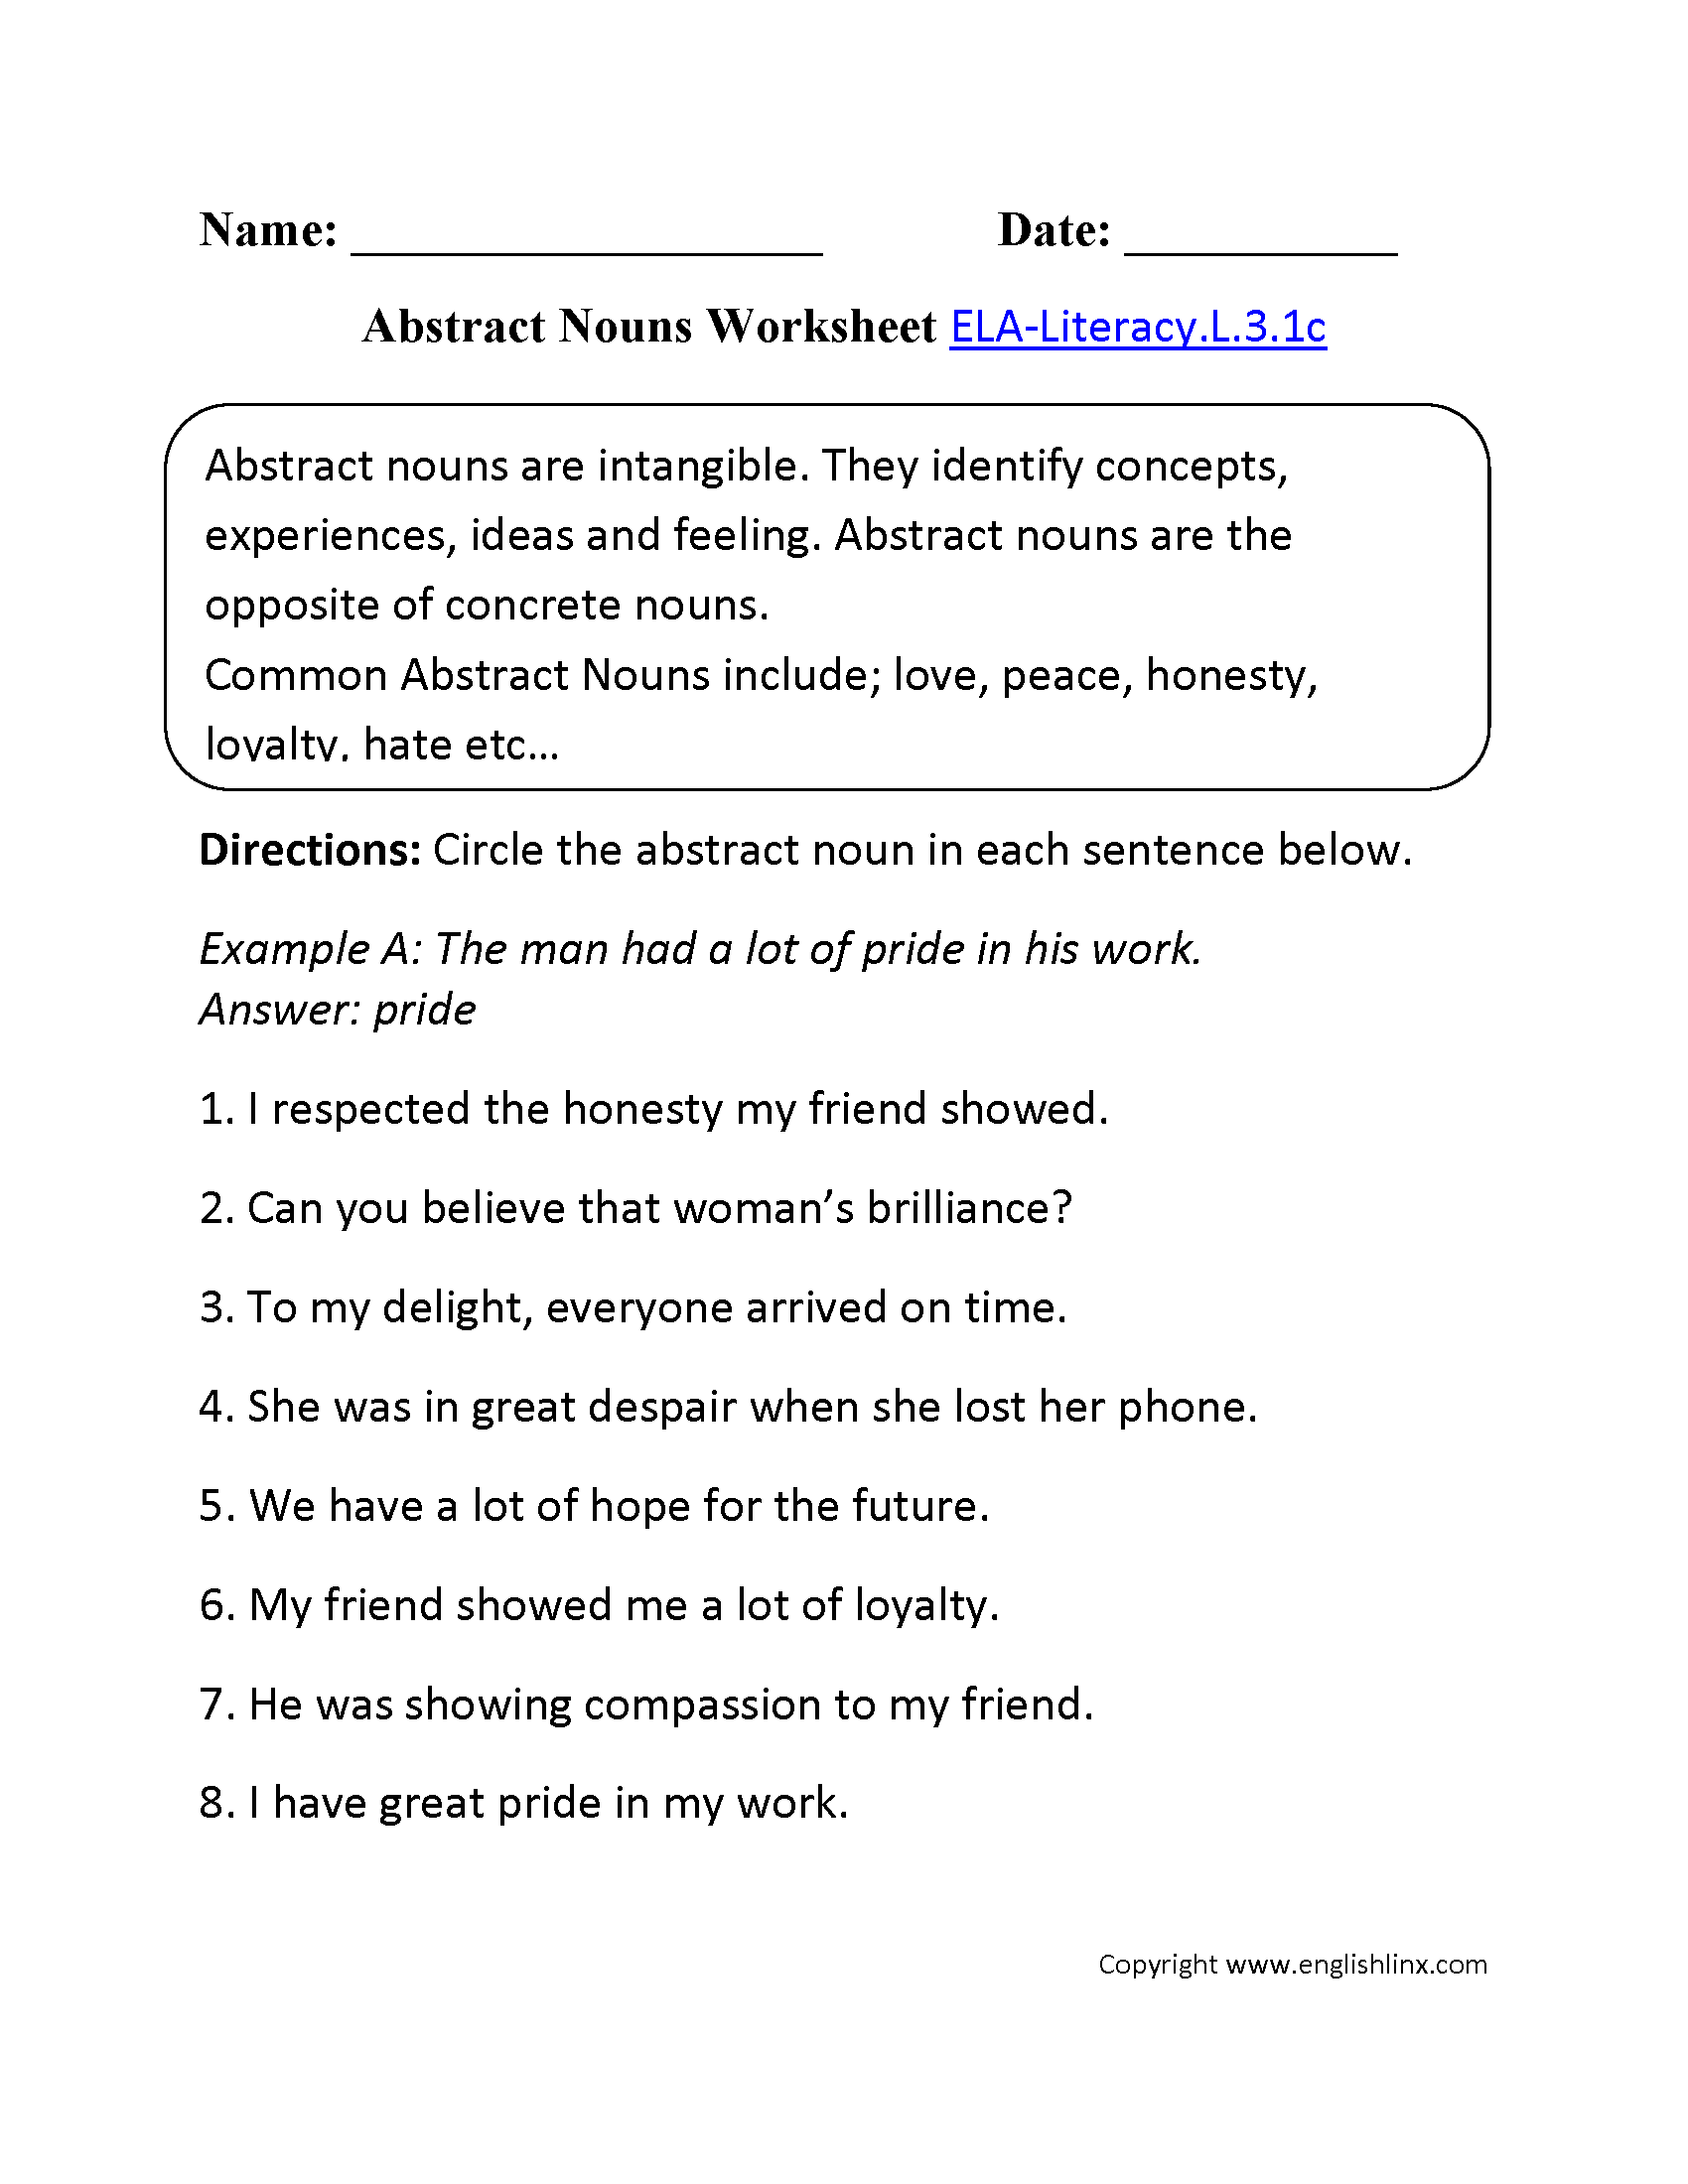 further abstract noun worksheets with answers together with Abstract Noun Worksheets In Hindi Hindi Grammar Worksheets On in addition Abstract And Concrete Noun Worksheets additionally Find Abstract Nouns Noun Worksheets And Collective For Grade 6 furthermore Concrete And Abstract Nouns Worksheet Grade Proper Homework Free 7th in addition Collection of Nouns worksheet for grade 7   Download them and try to in addition abstract noun worksheets with answers together with  additionally Cool Concrete And Abstract Nouns Lesson Plans Worksheets 13015 Plan as well Find Abstract Nouns Noun Worksheets And Collective For Grade 6 in addition  also  in addition  as well Abstract Nouns  Grade 3    Free Printable Tests and Worksheets besides Abstract Noun Worksheets   proworksheet. on abstract nouns worksheet grade 7